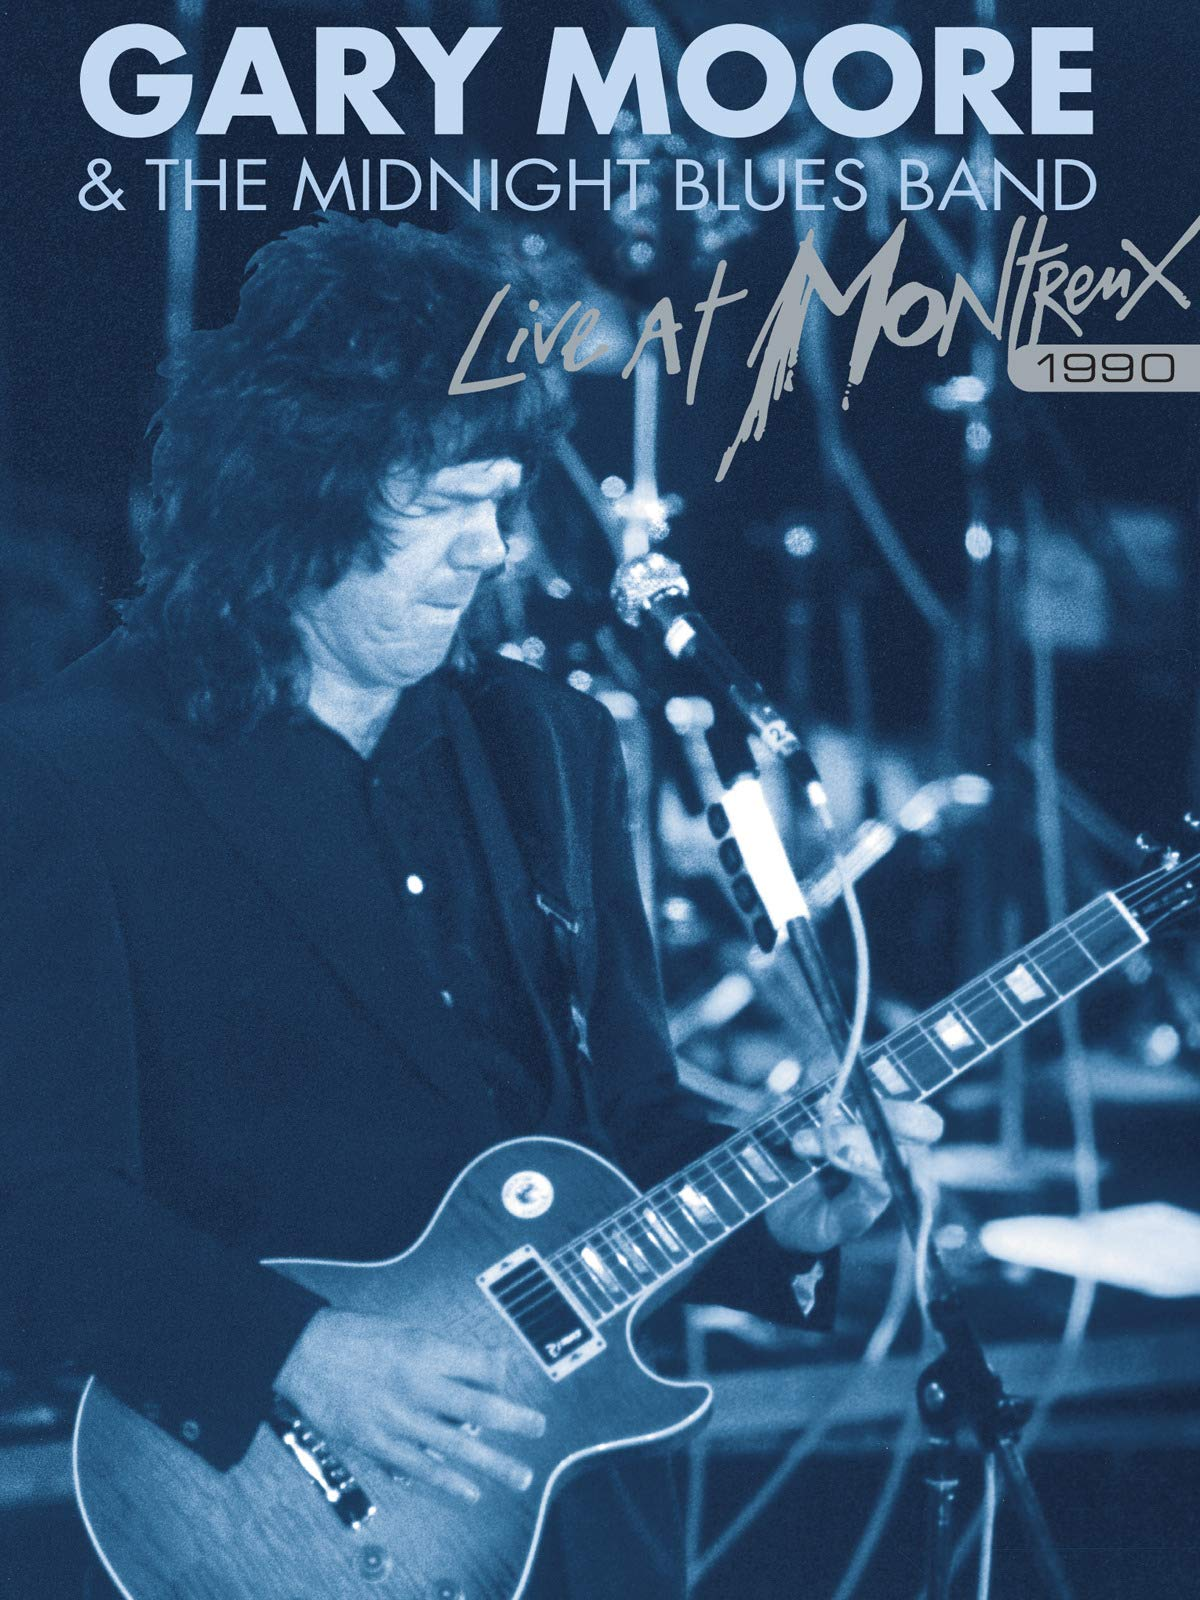 Gary Moore & The Midnight Blues Band - Live In Montreux 1990